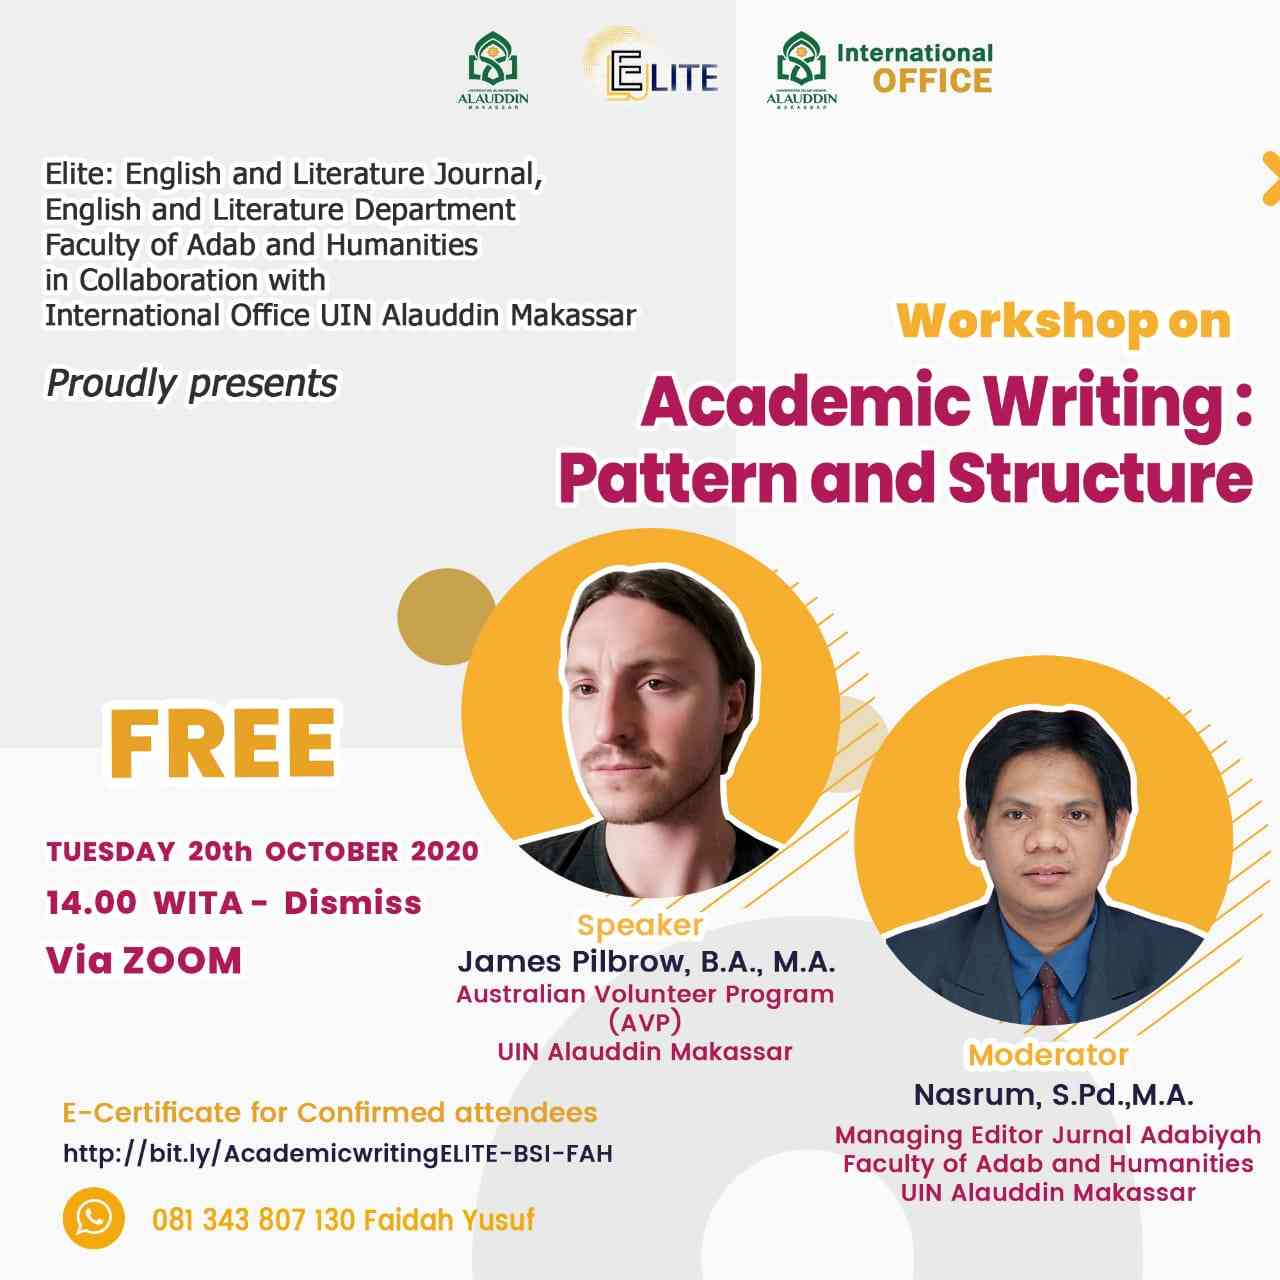 ELITE JOURNAL Kolaborasi Internasional Office UIN Alauddin Gelar Workshop Karya Tulis Ilmiah